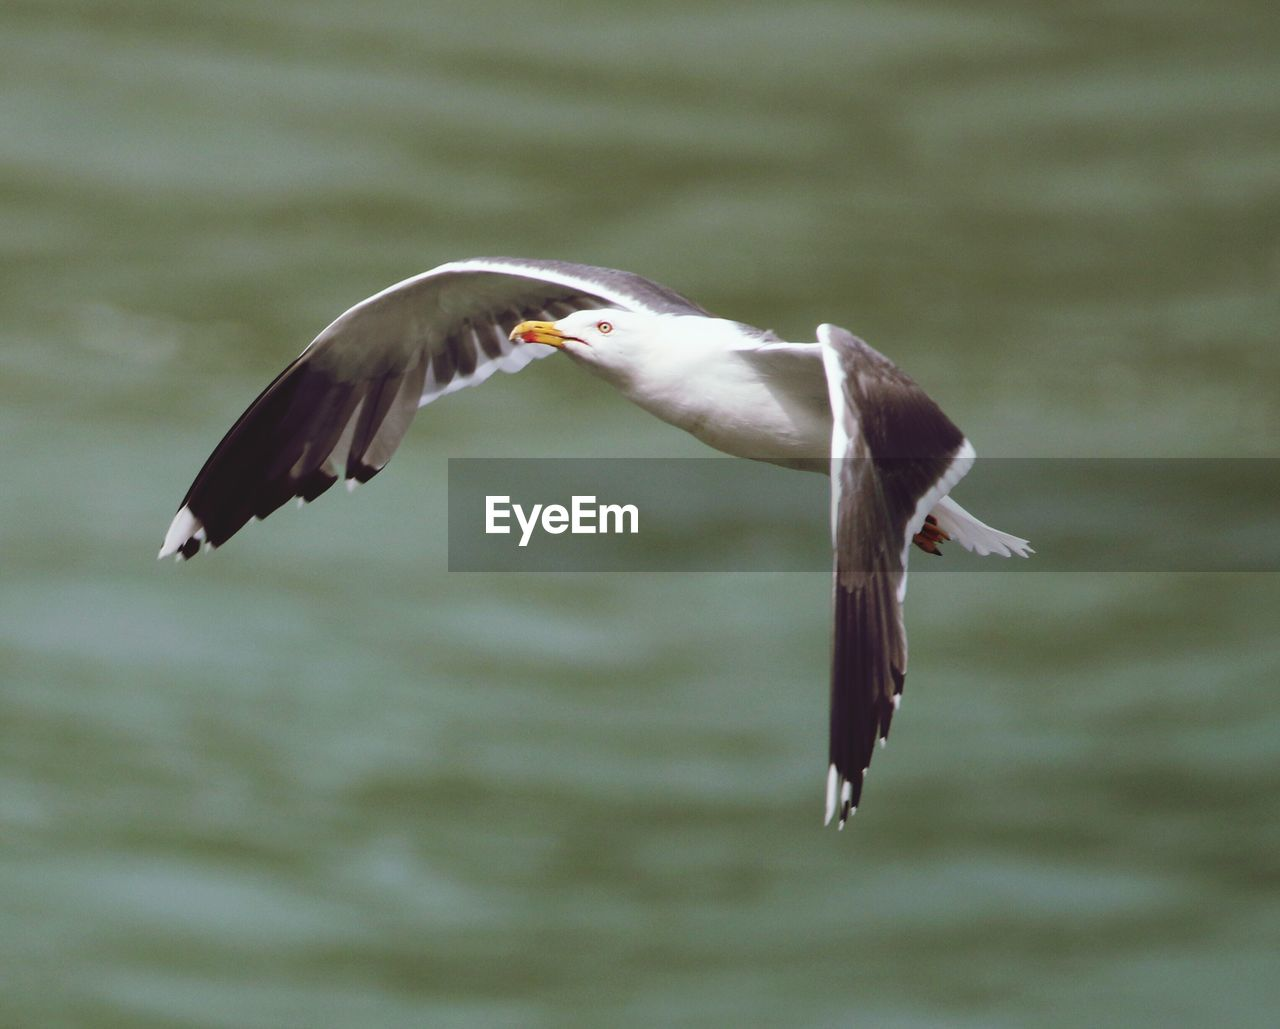 animal wildlife, animals in the wild, animal themes, animal, vertebrate, bird, flying, spread wings, mid-air, no people, motion, nature, focus on foreground, one animal, seagull, day, water, animals hunting, survival, outdoors, mouth open